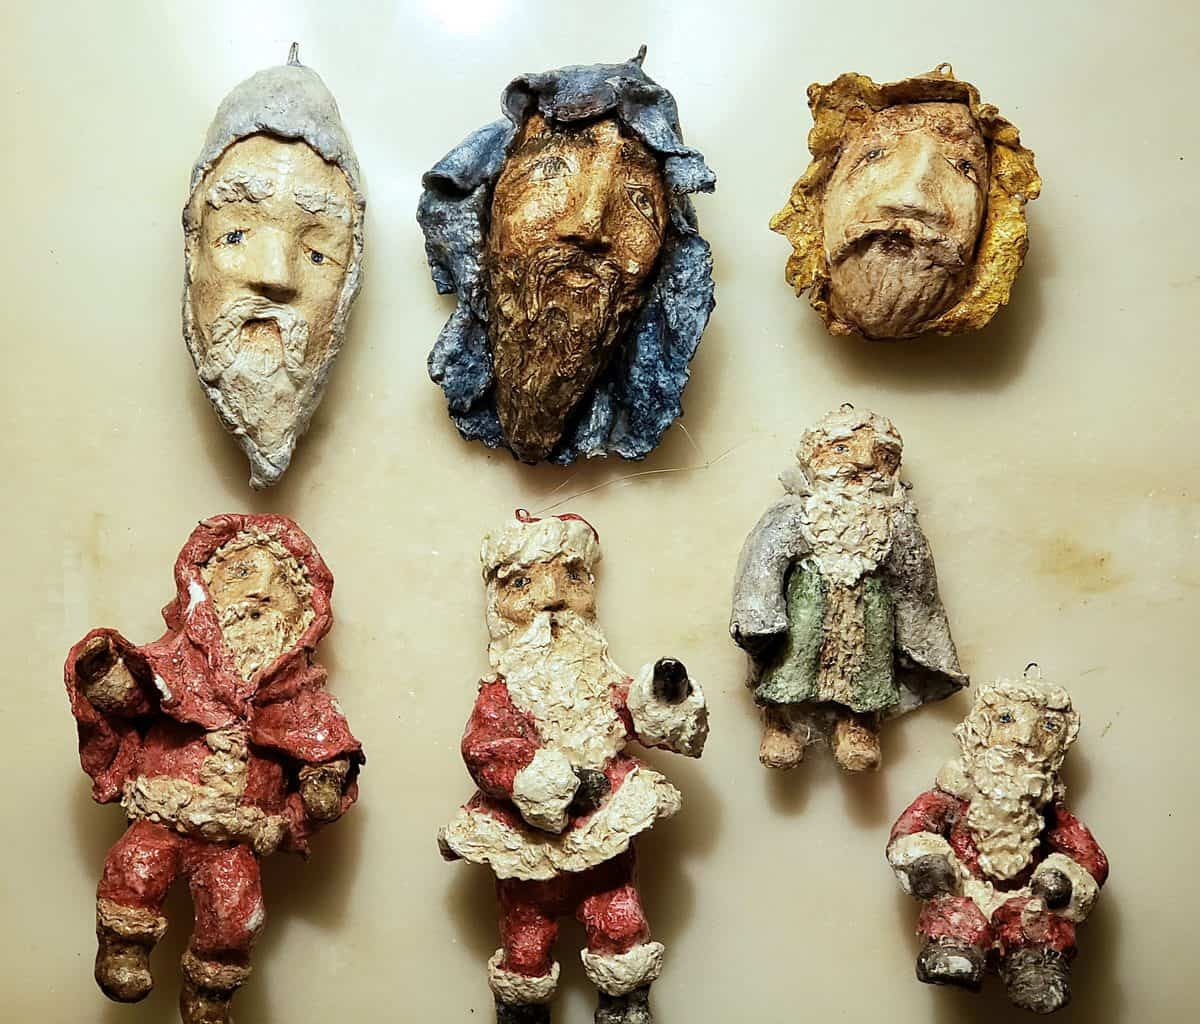 Christmas ornaments made with Active Celluclay